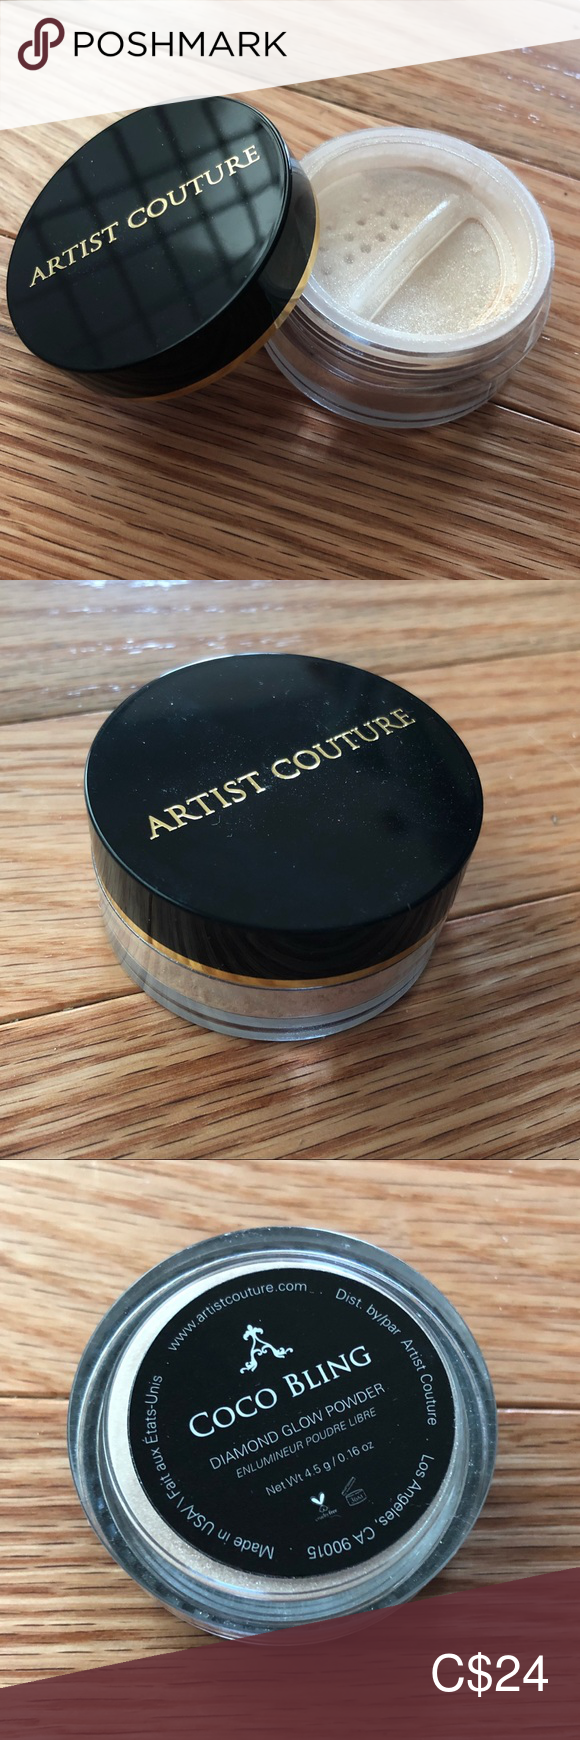 Artist Couture Diamond Glow Powder In Coco Bling in 2020